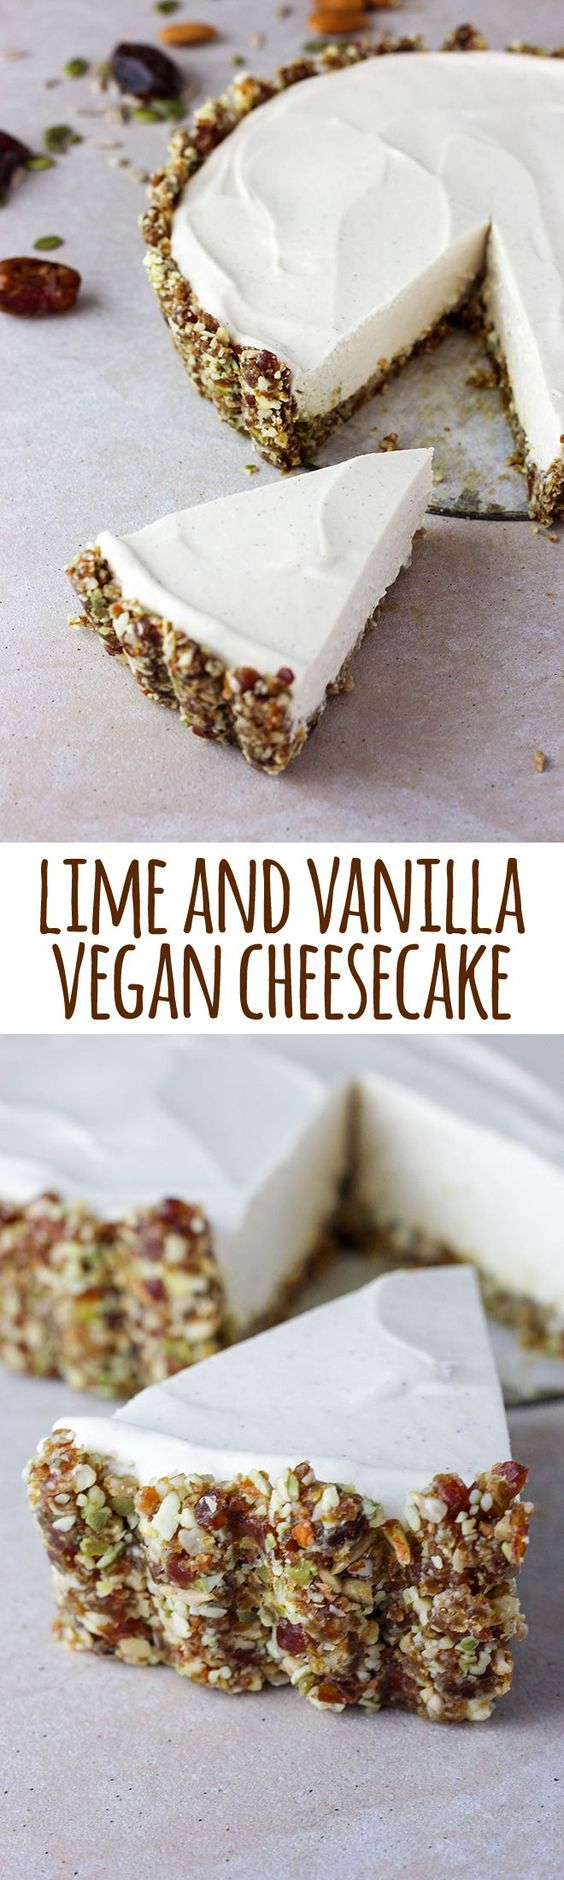 This easy no-bake lime and vanilla vegan cheesecake is light, creamy and subtly sweet with a perfectly silky texture. via @quitegoodfood